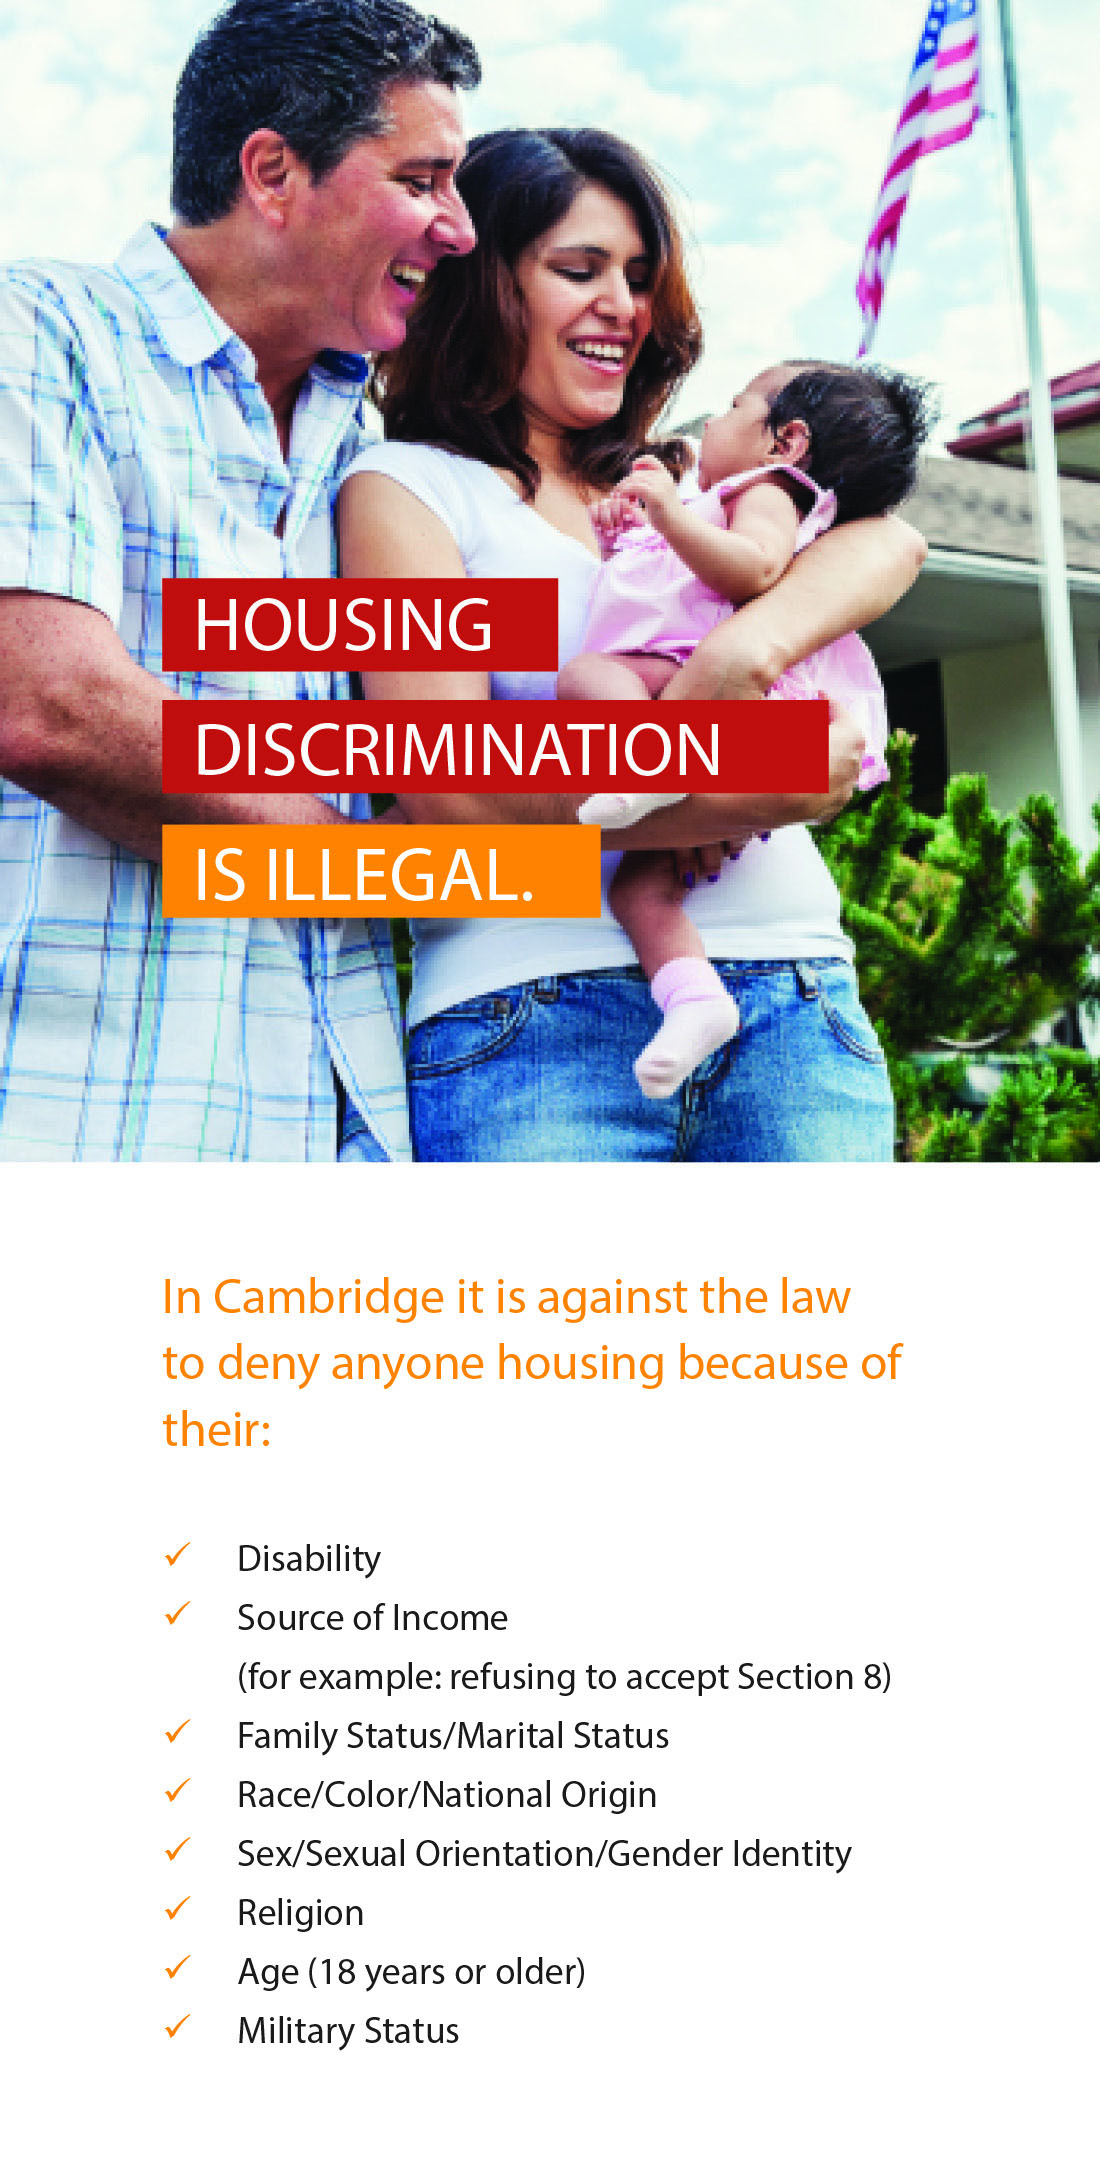 Fair Housing is Illegal